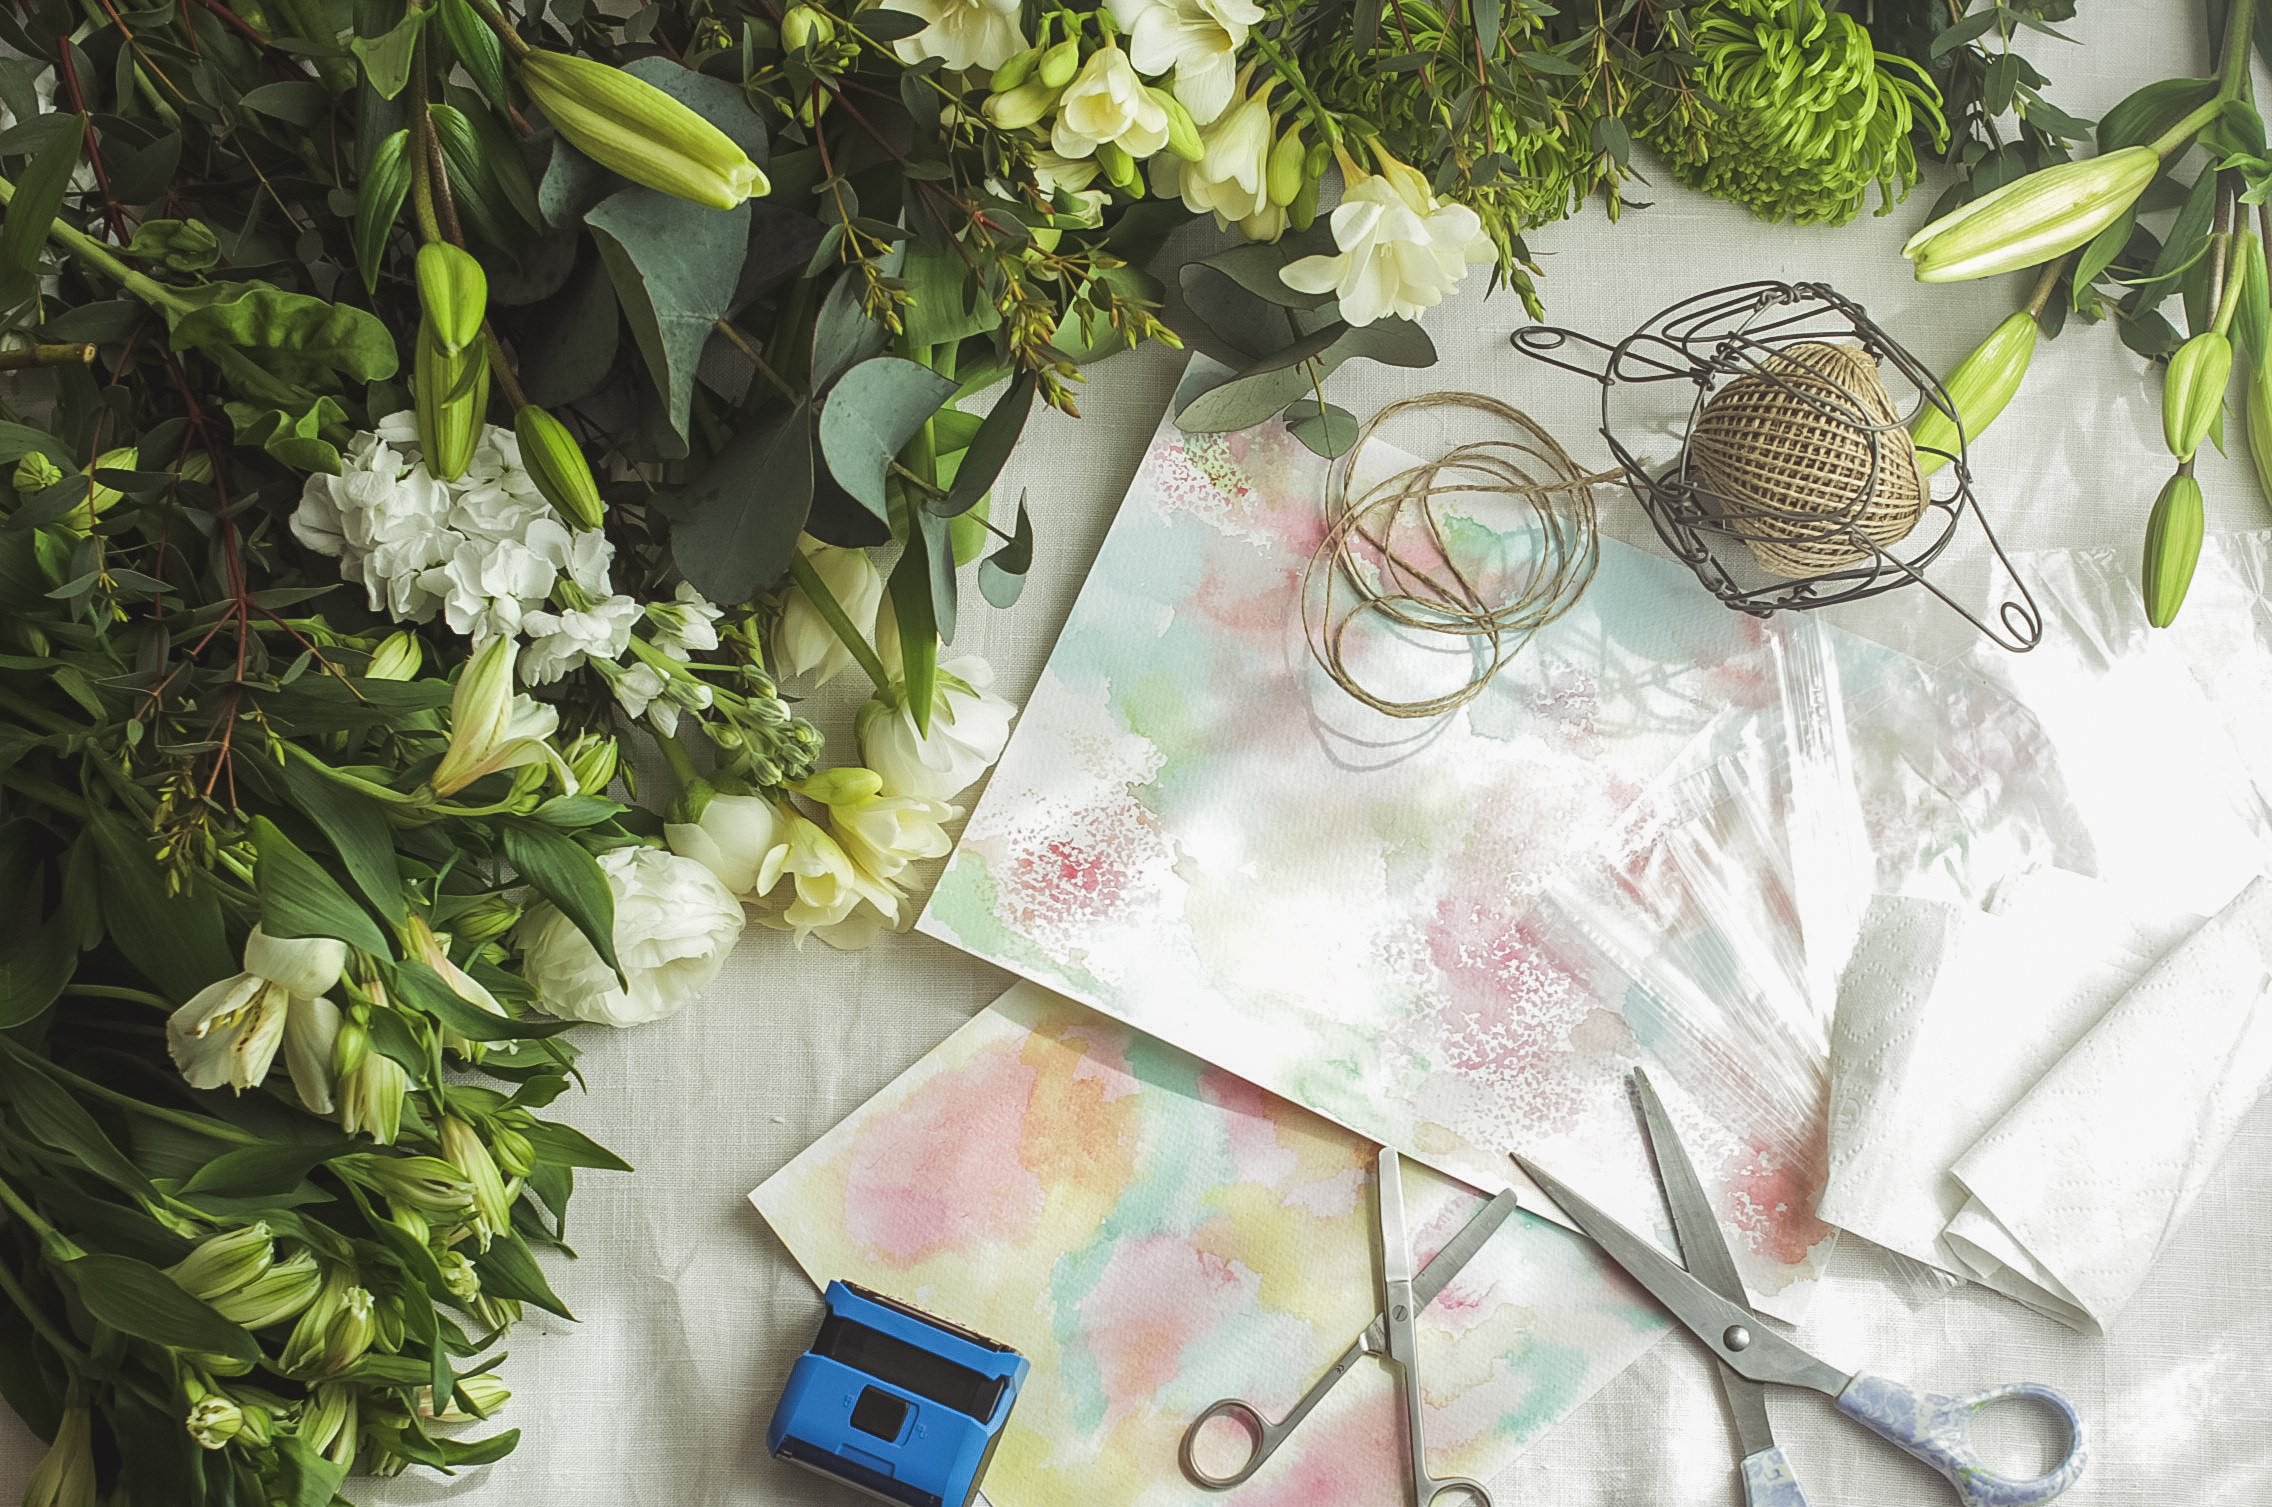 Make May Day posies for friends | Seeds and Stitches blog